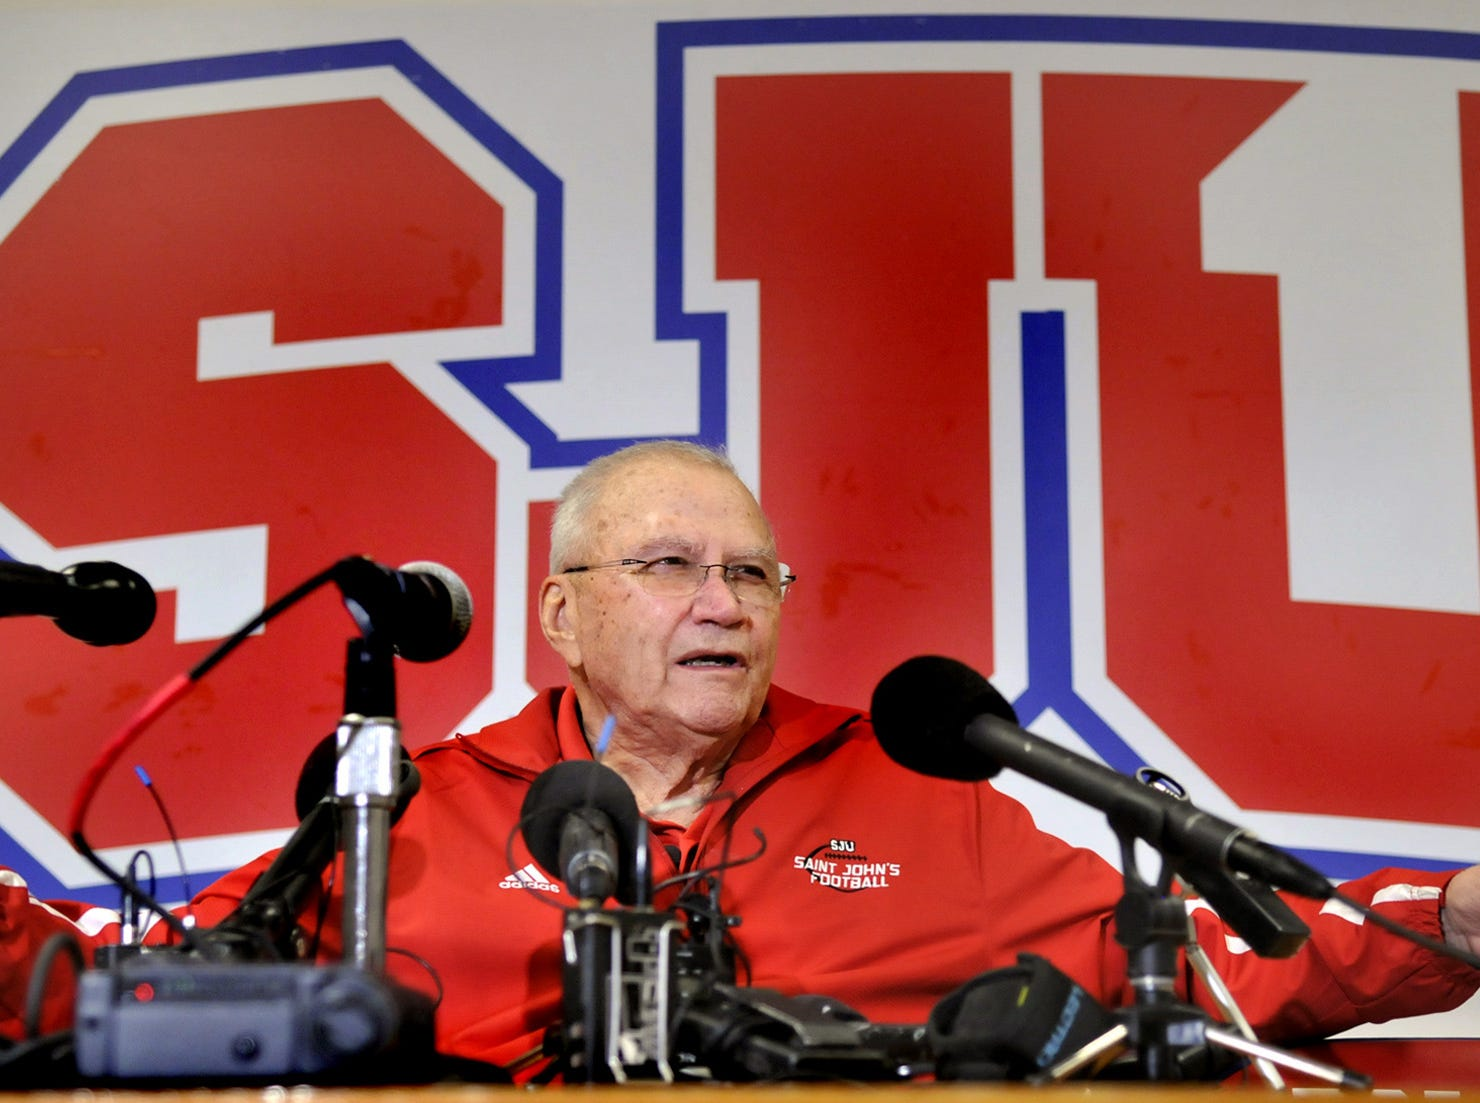 John Gagliardi, college football's winningest coach, announces his retirement from the head coaching position at St. John's University during a news conference in Collegeville. Gagliardi coached for 489 wins.